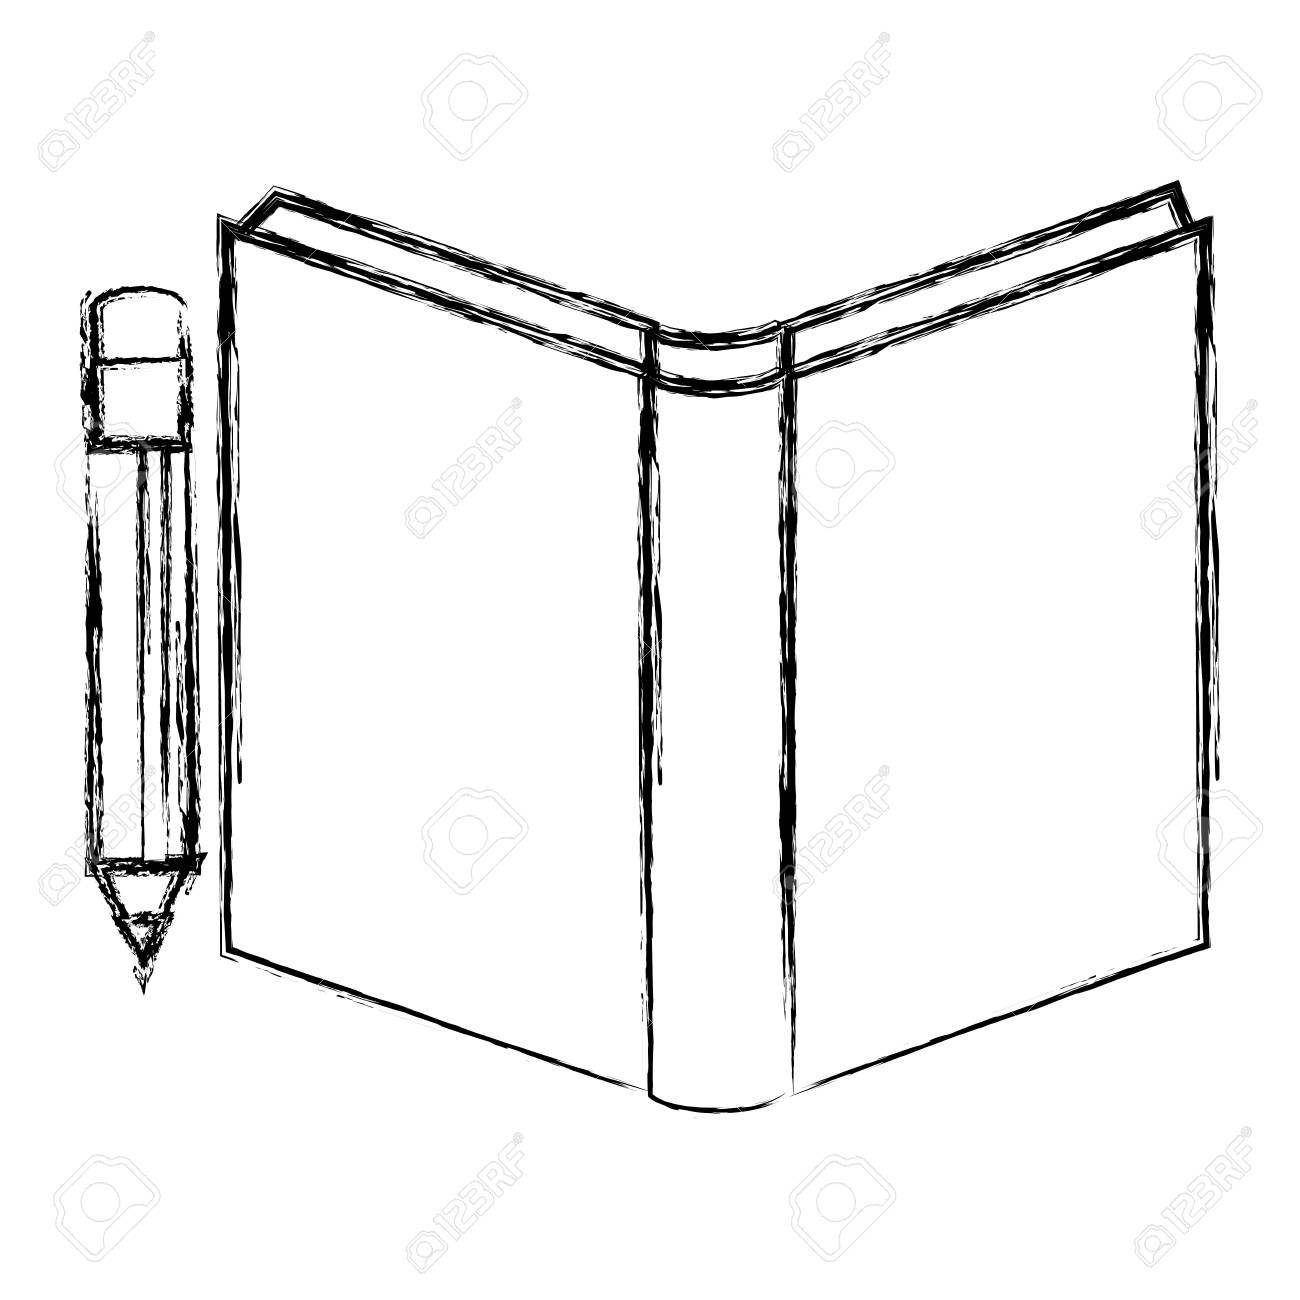 Outline drawing of school text book with pencil vector illustration